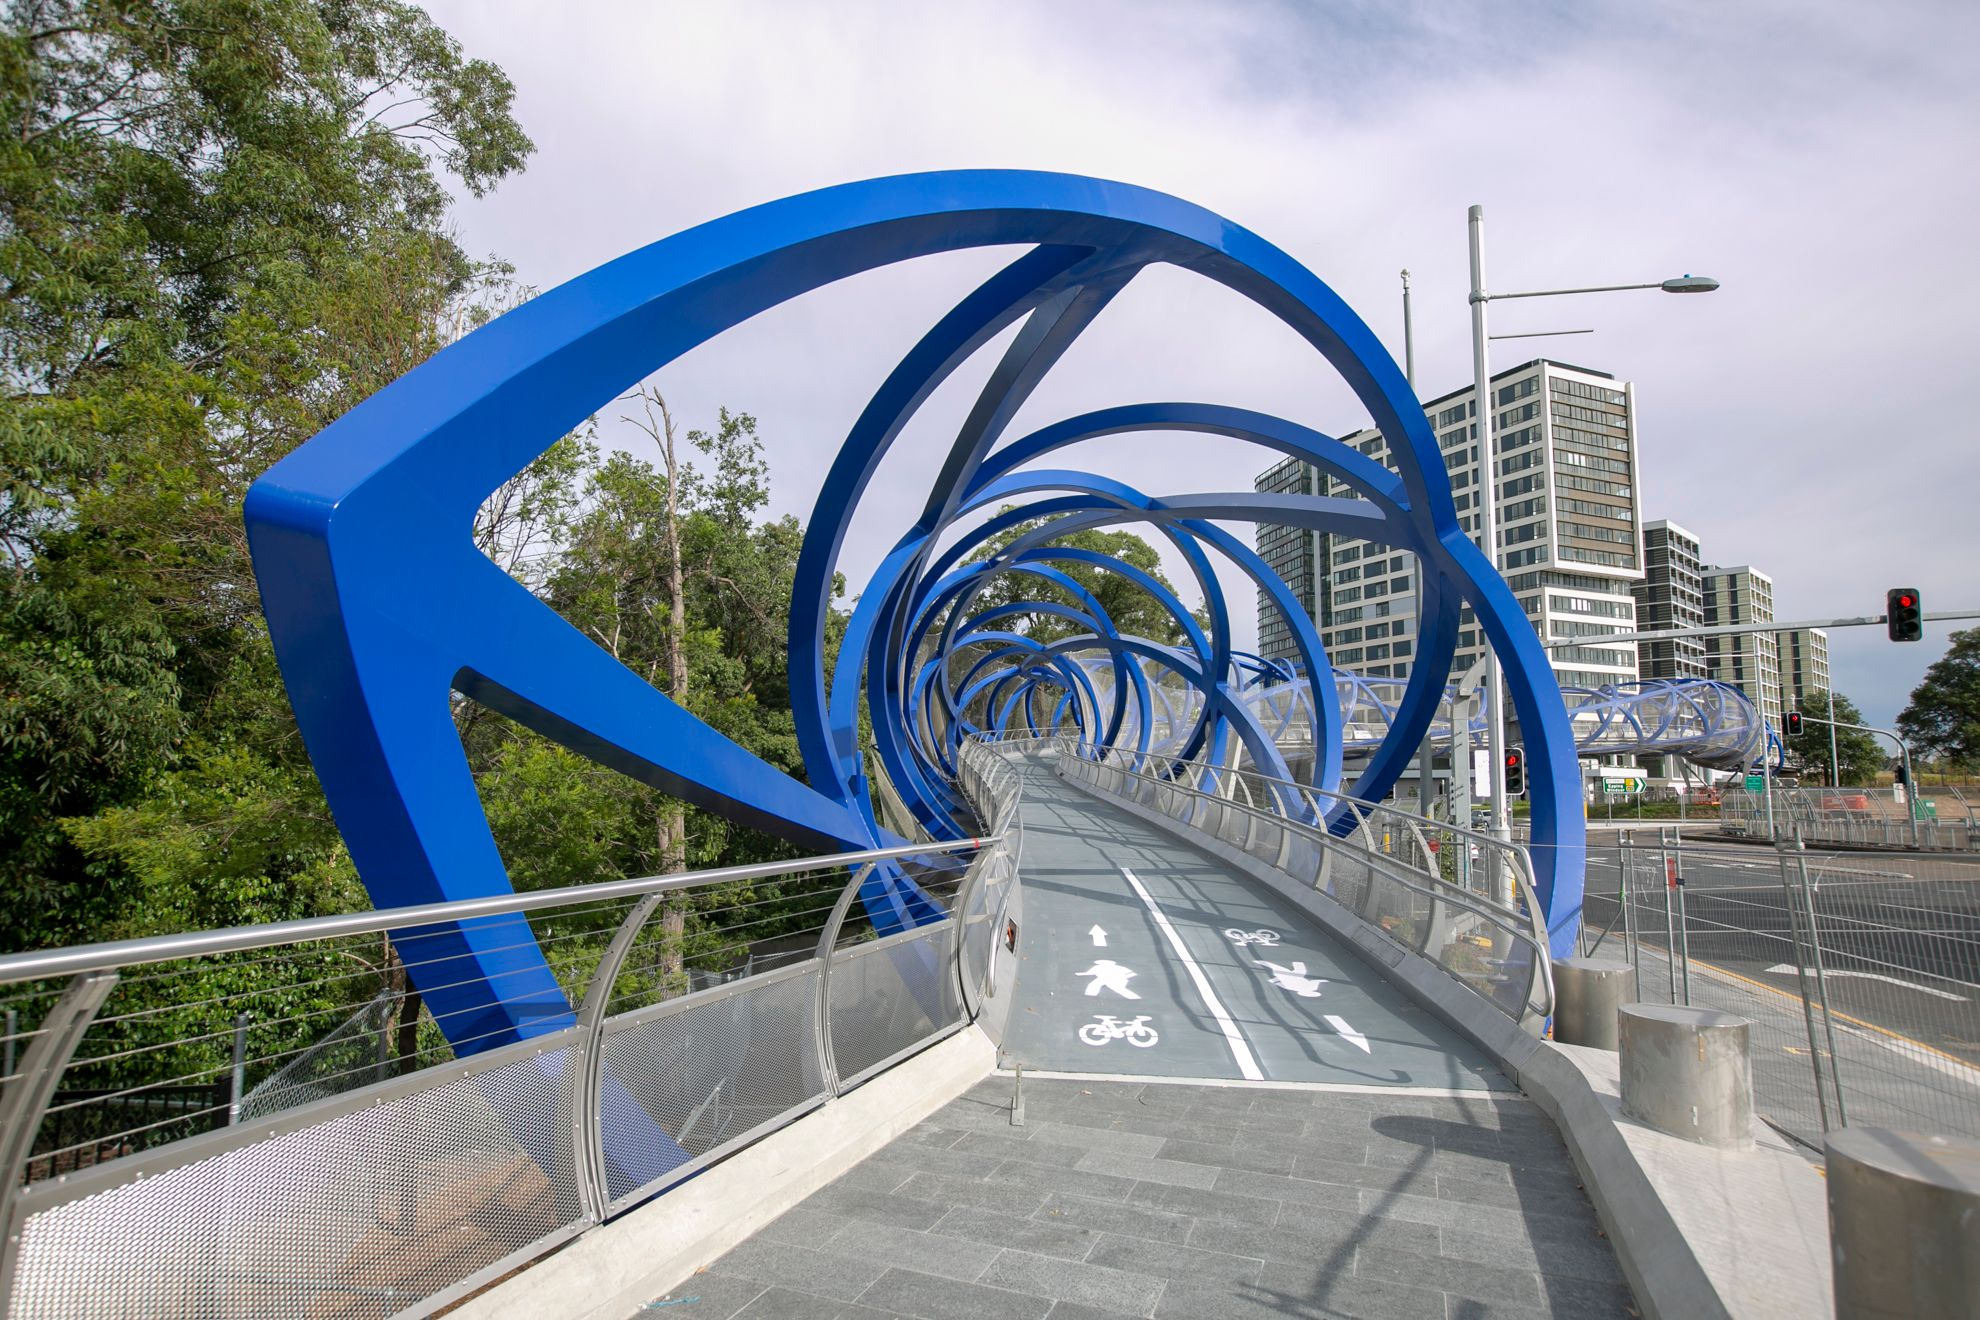 Australia's First Double Helix Bridge Opens in Sydney